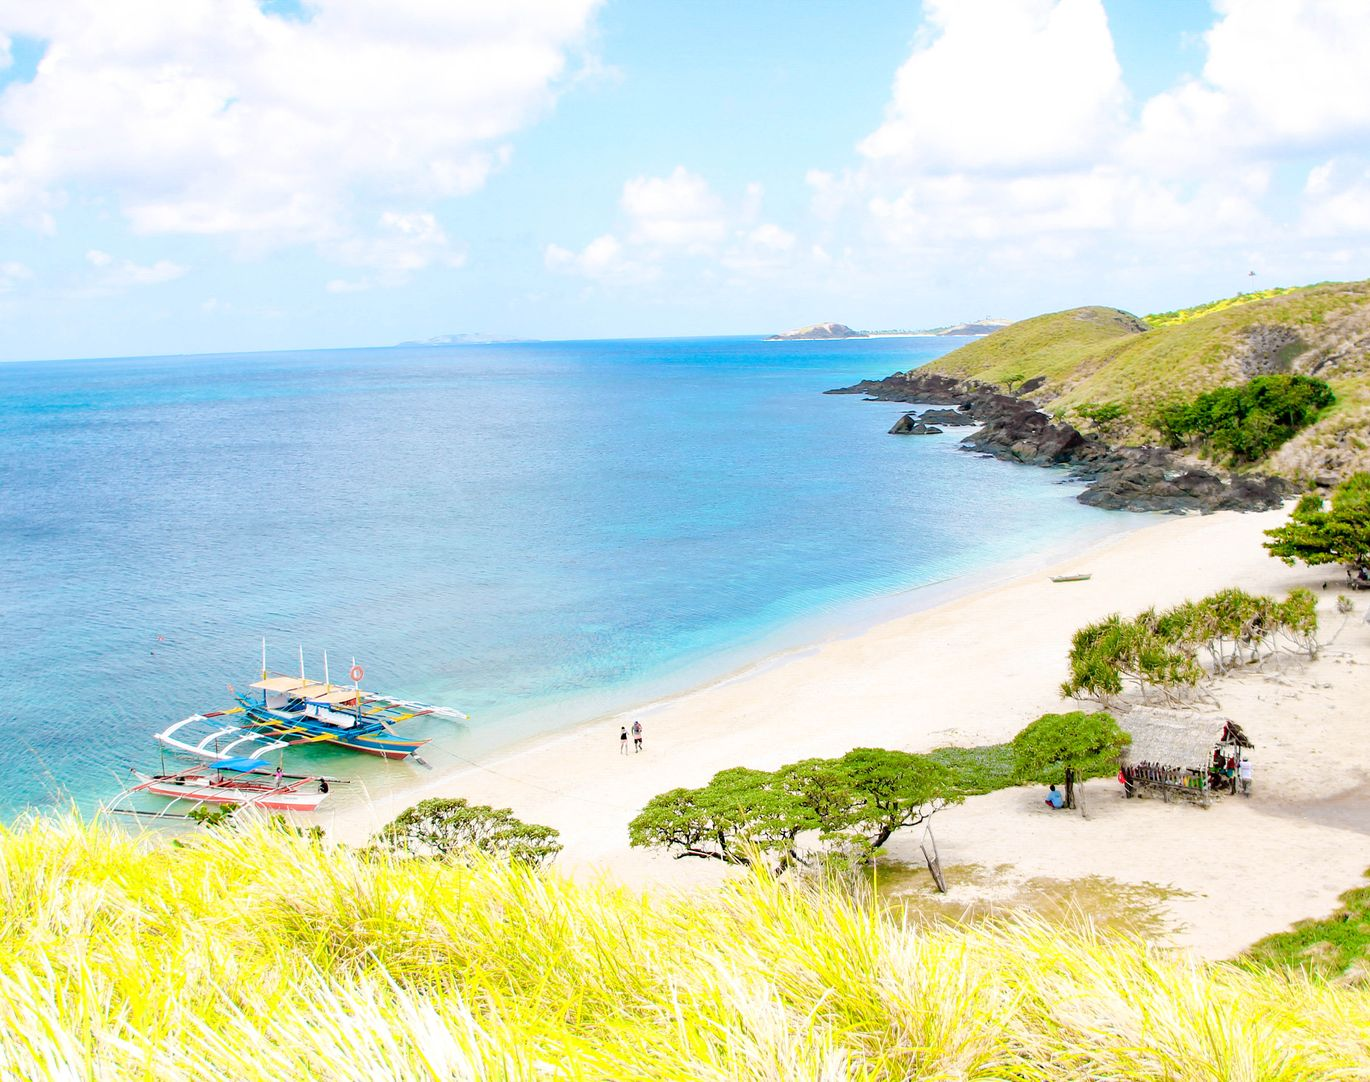 A white sandy beach at the feet of grassy hills, facing the blue sea